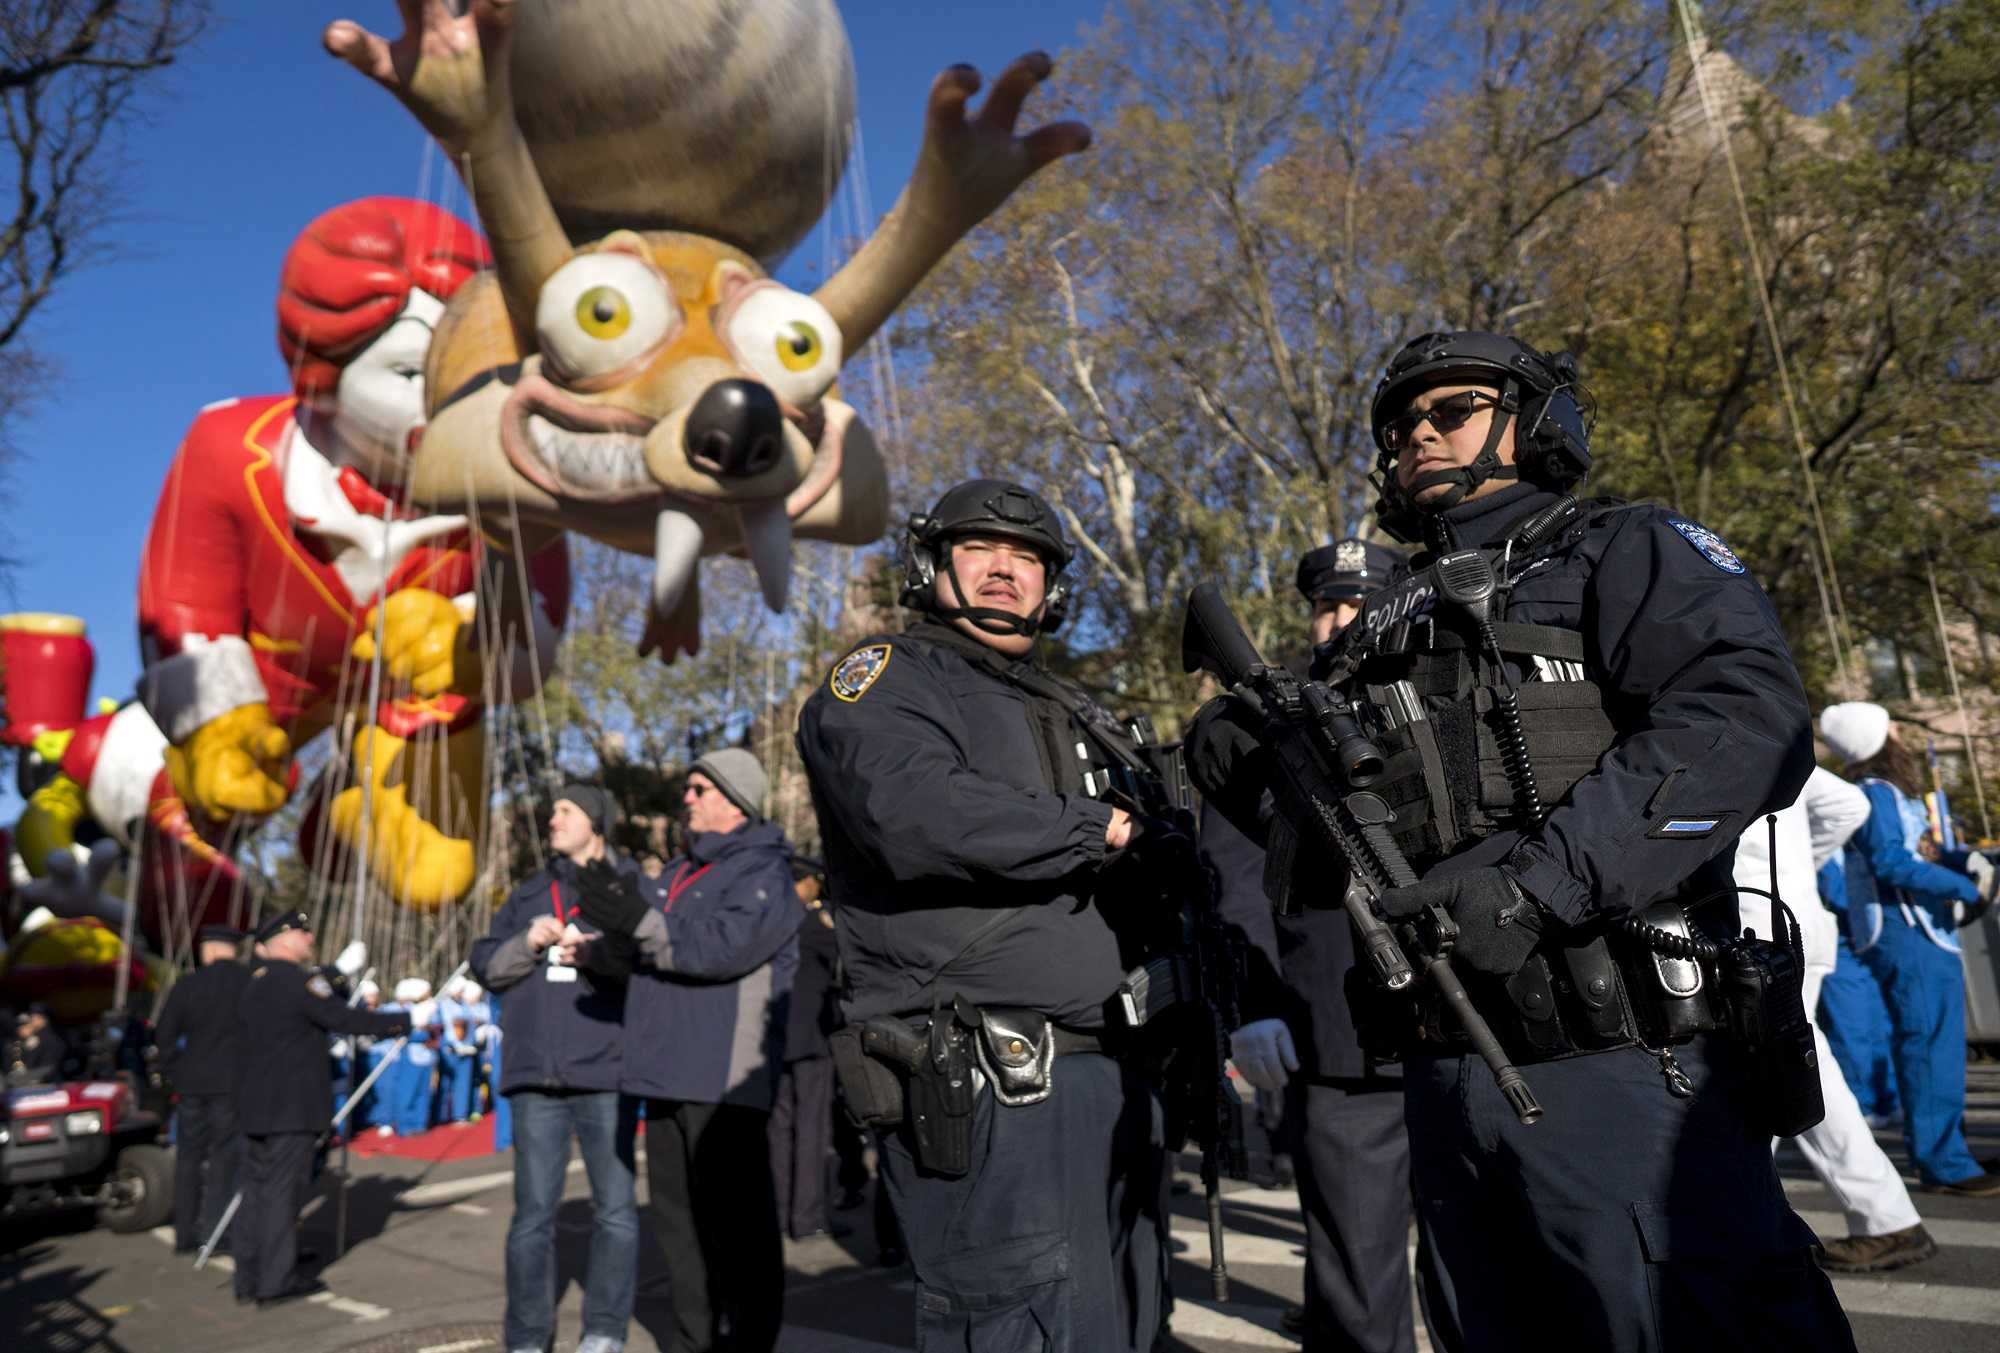 Macy's parade begins with balloons, bands and security